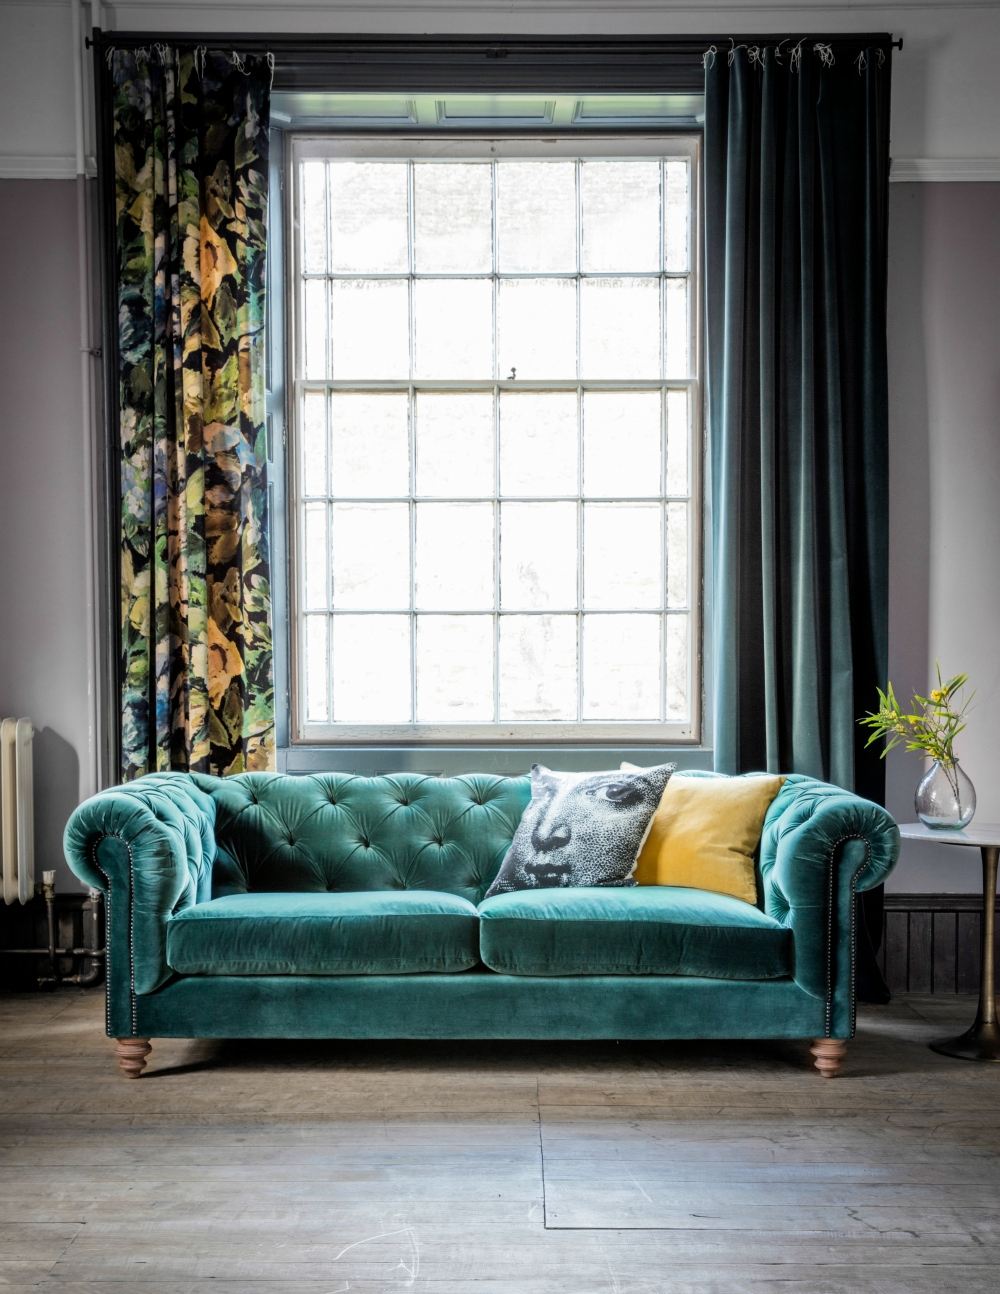 Velvet Chesterfield Sofa Rose Grey Throughout Chesterfield Sofas (Image 15 of 15)